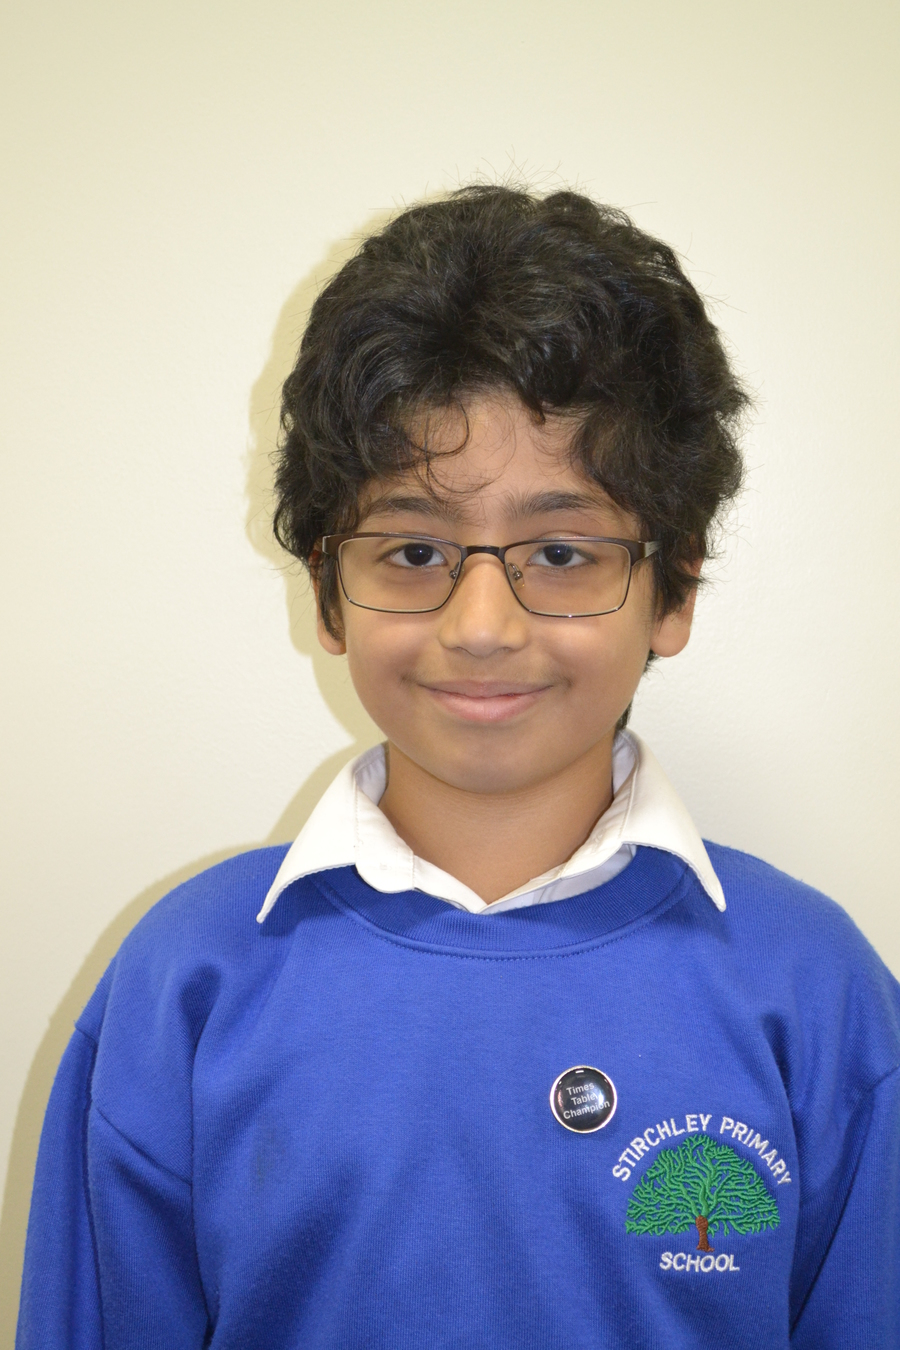 Well done Aryan!